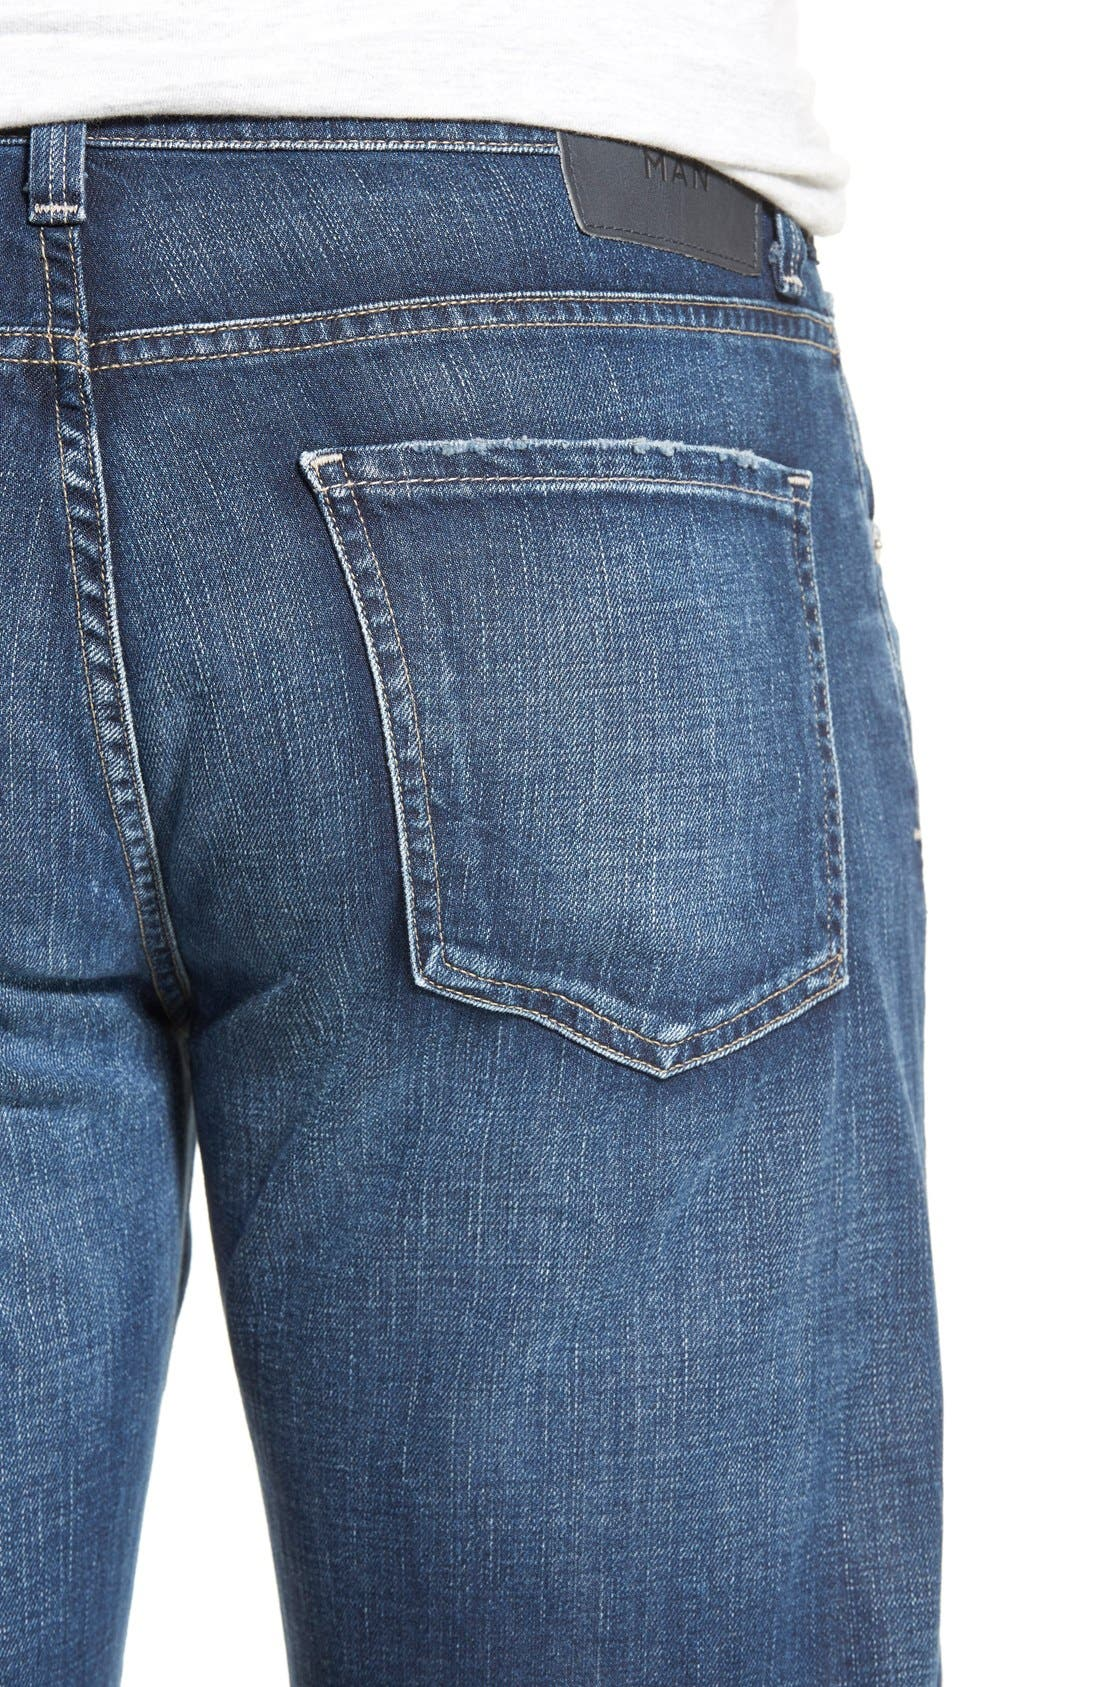 Alternate Image 4  - Citizens of Humanity 'Evans' Relaxed Fit Jeans (Derby)